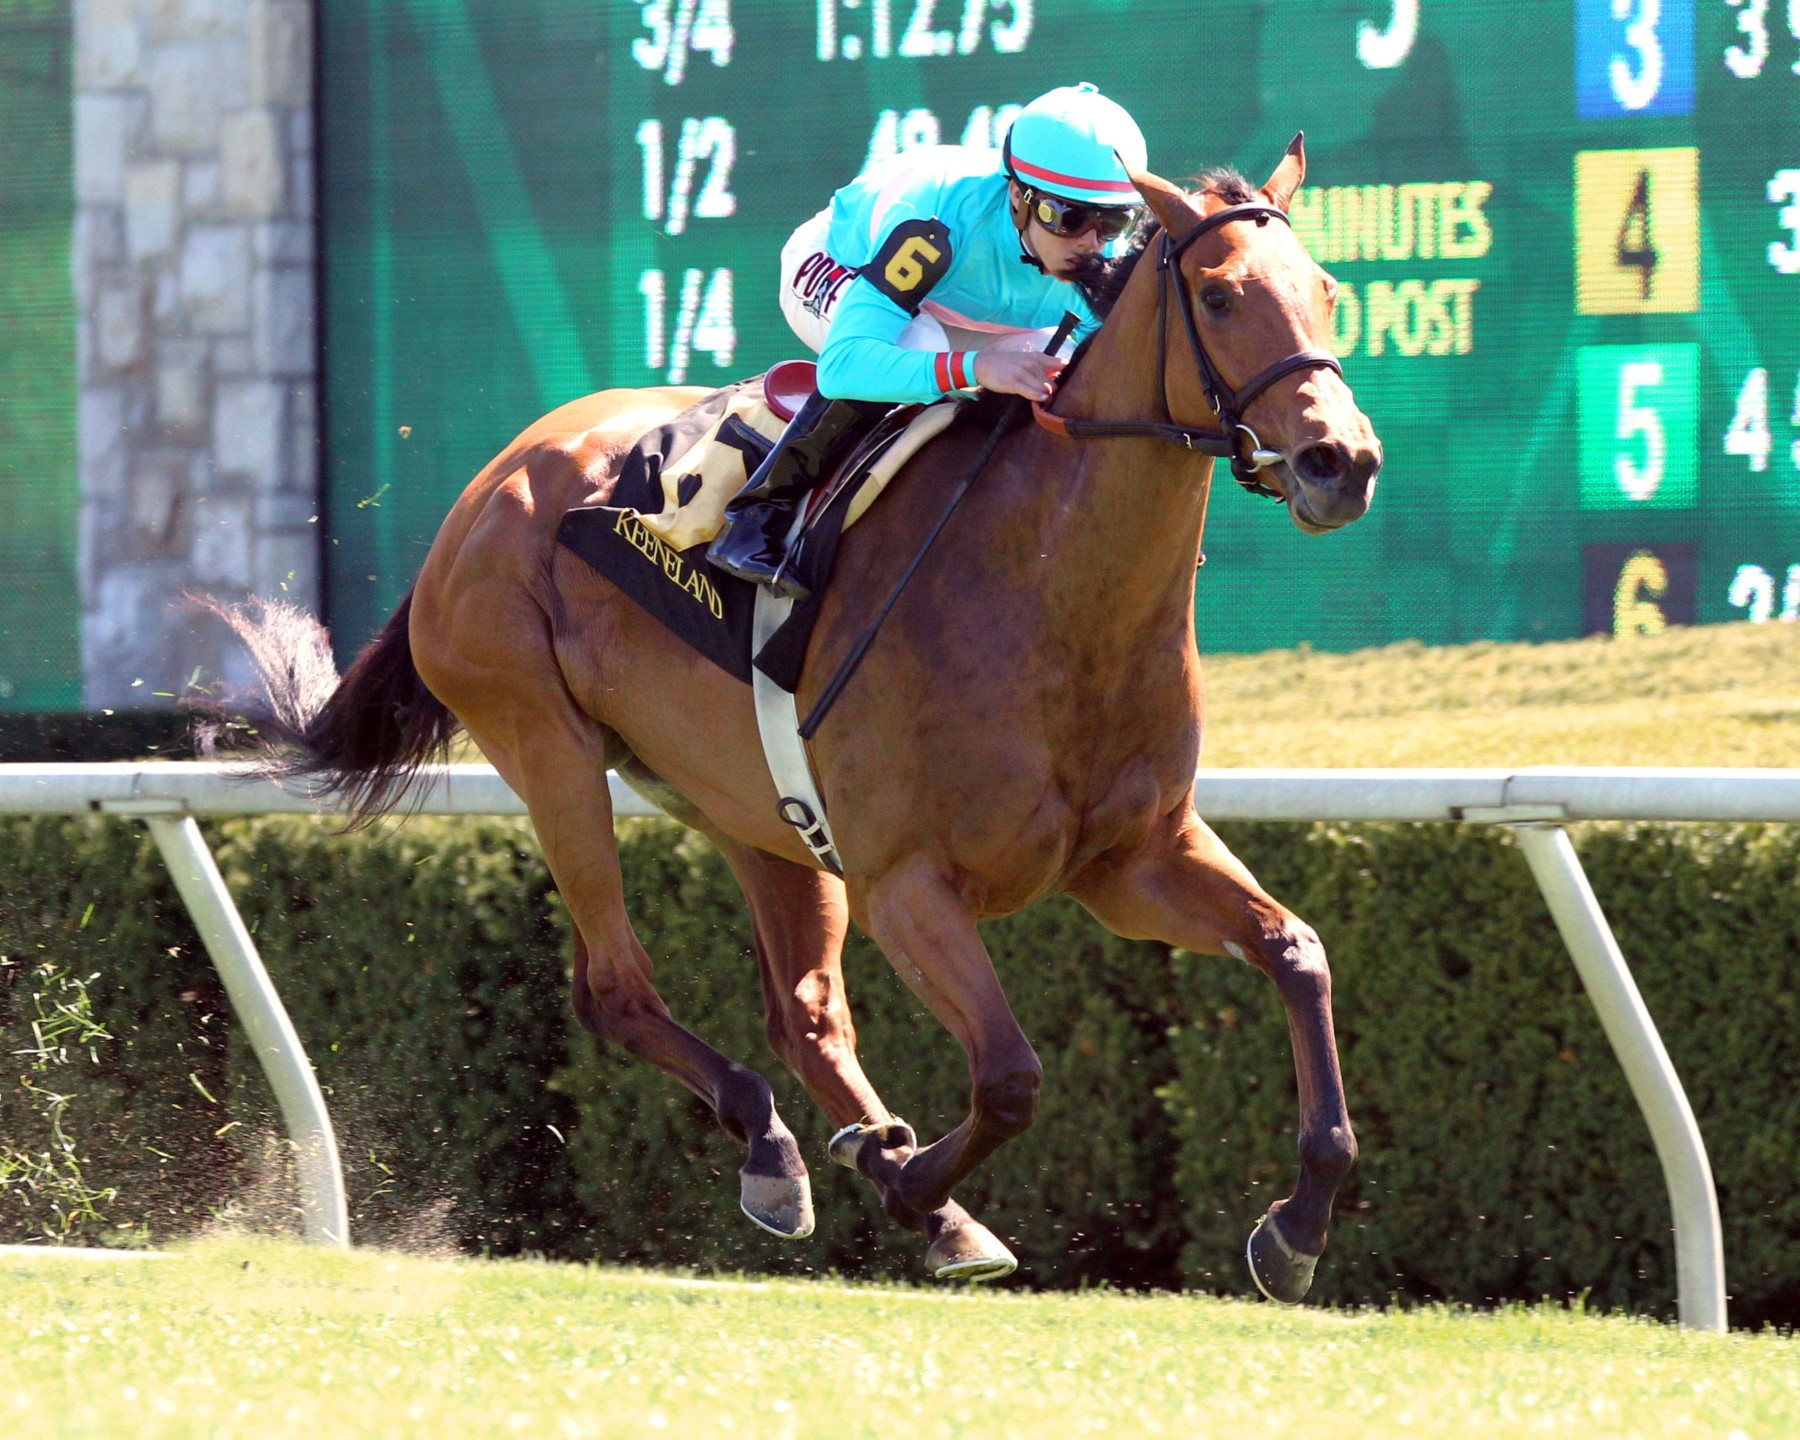 BREEDERS' CUP FILLY AND MARE TURF (Gr1) - Lady Eli, la miraculée